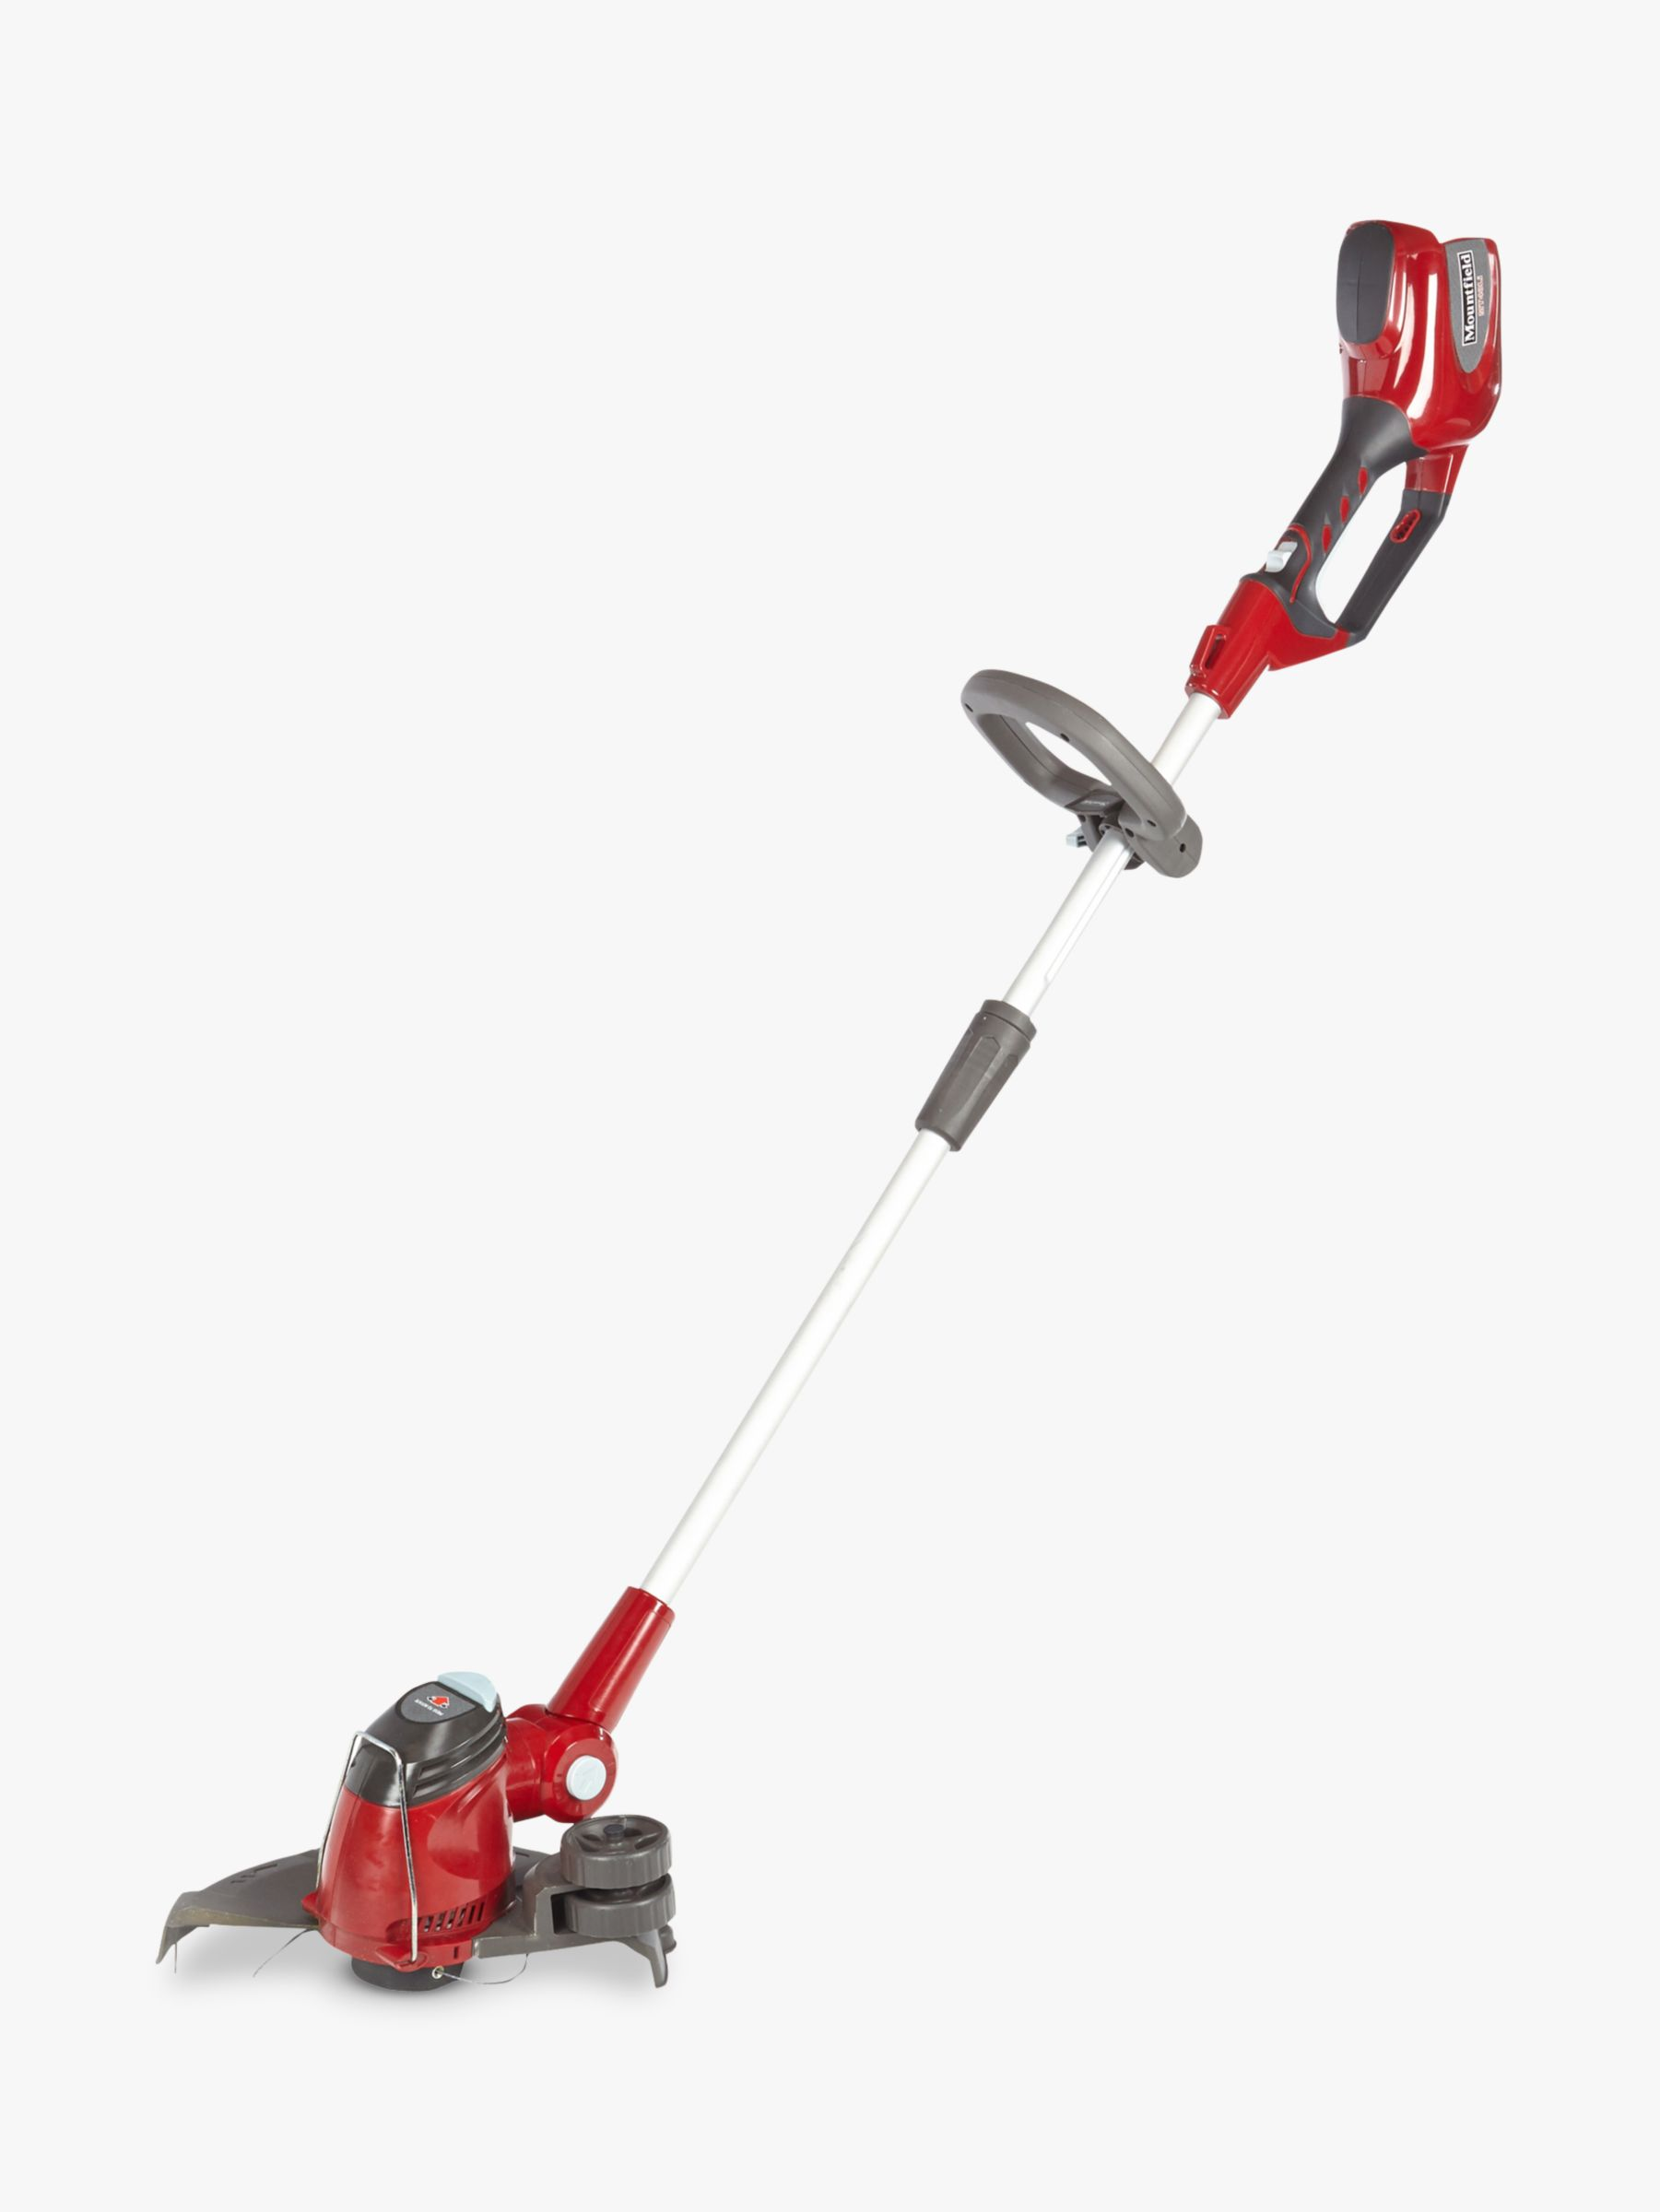 Mountfield Mountfield MT48Li 48 Volt Lithium-Ion Cordless Grass Trimmer